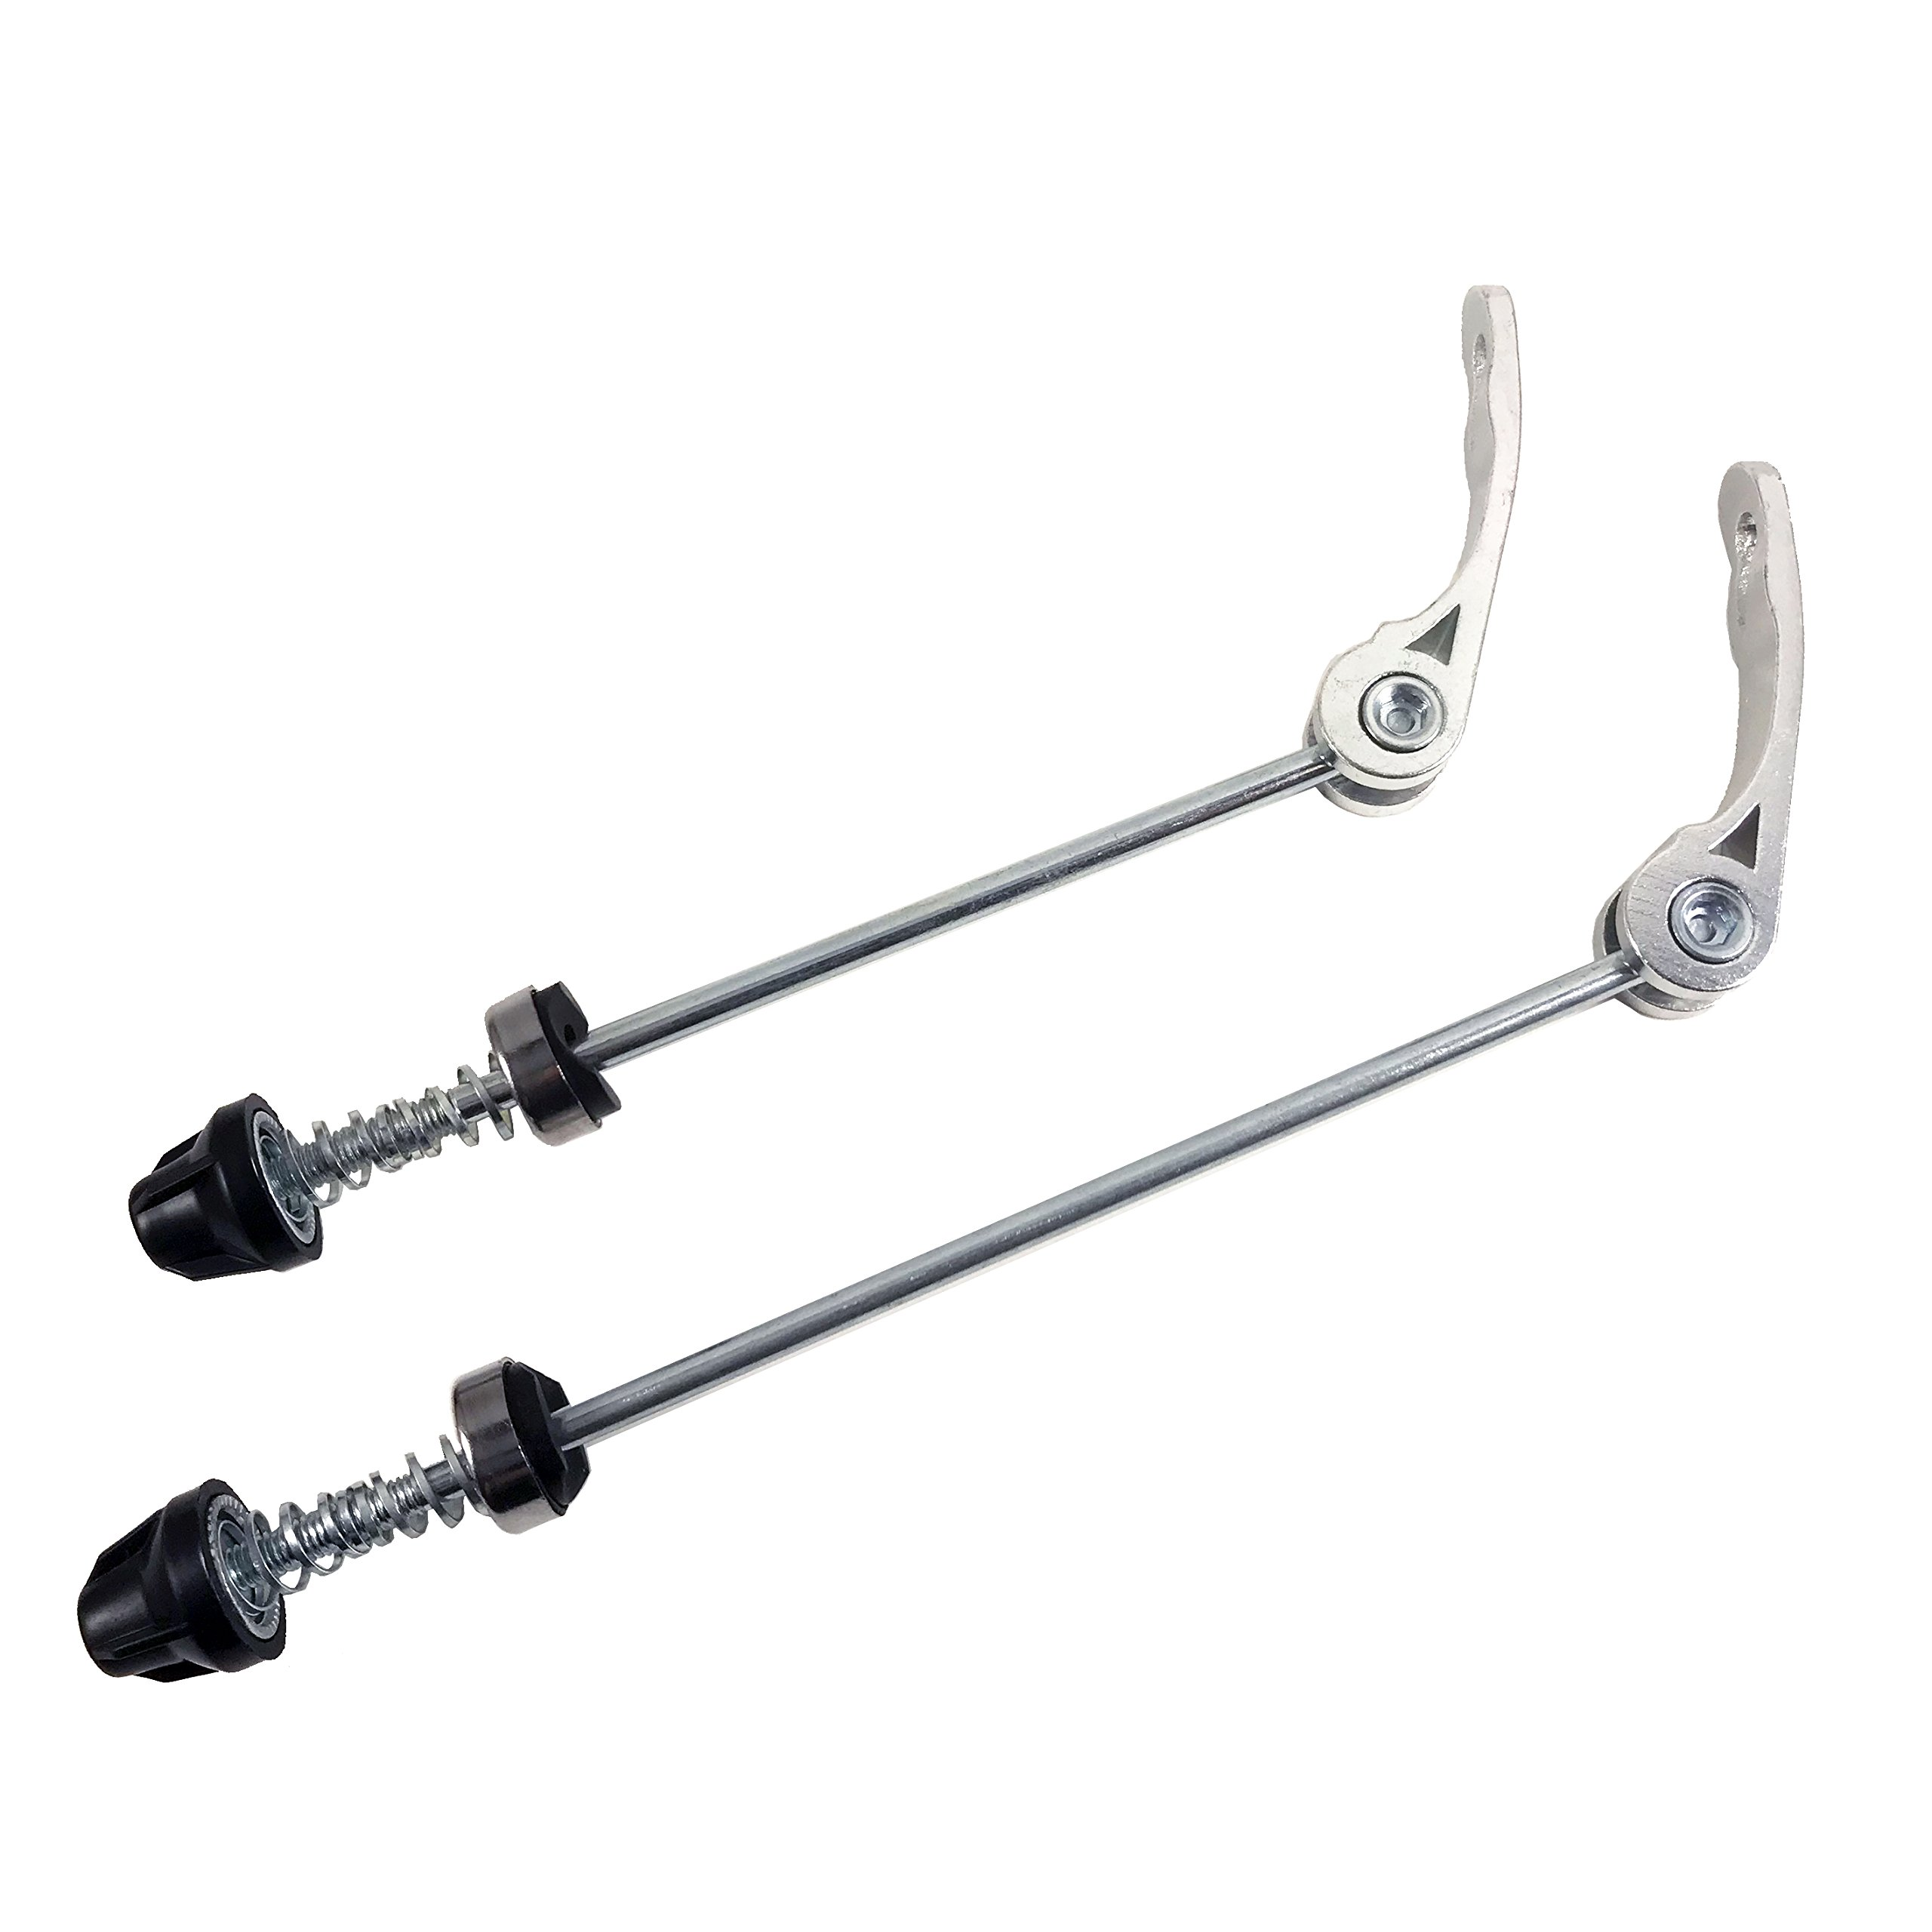 DEERU Road Mountain Bicycle MTB Wheel Hub Front and Rear Skewers Quick Release Clip Bolt Lever Axle QR 145/180 mm, a Pair